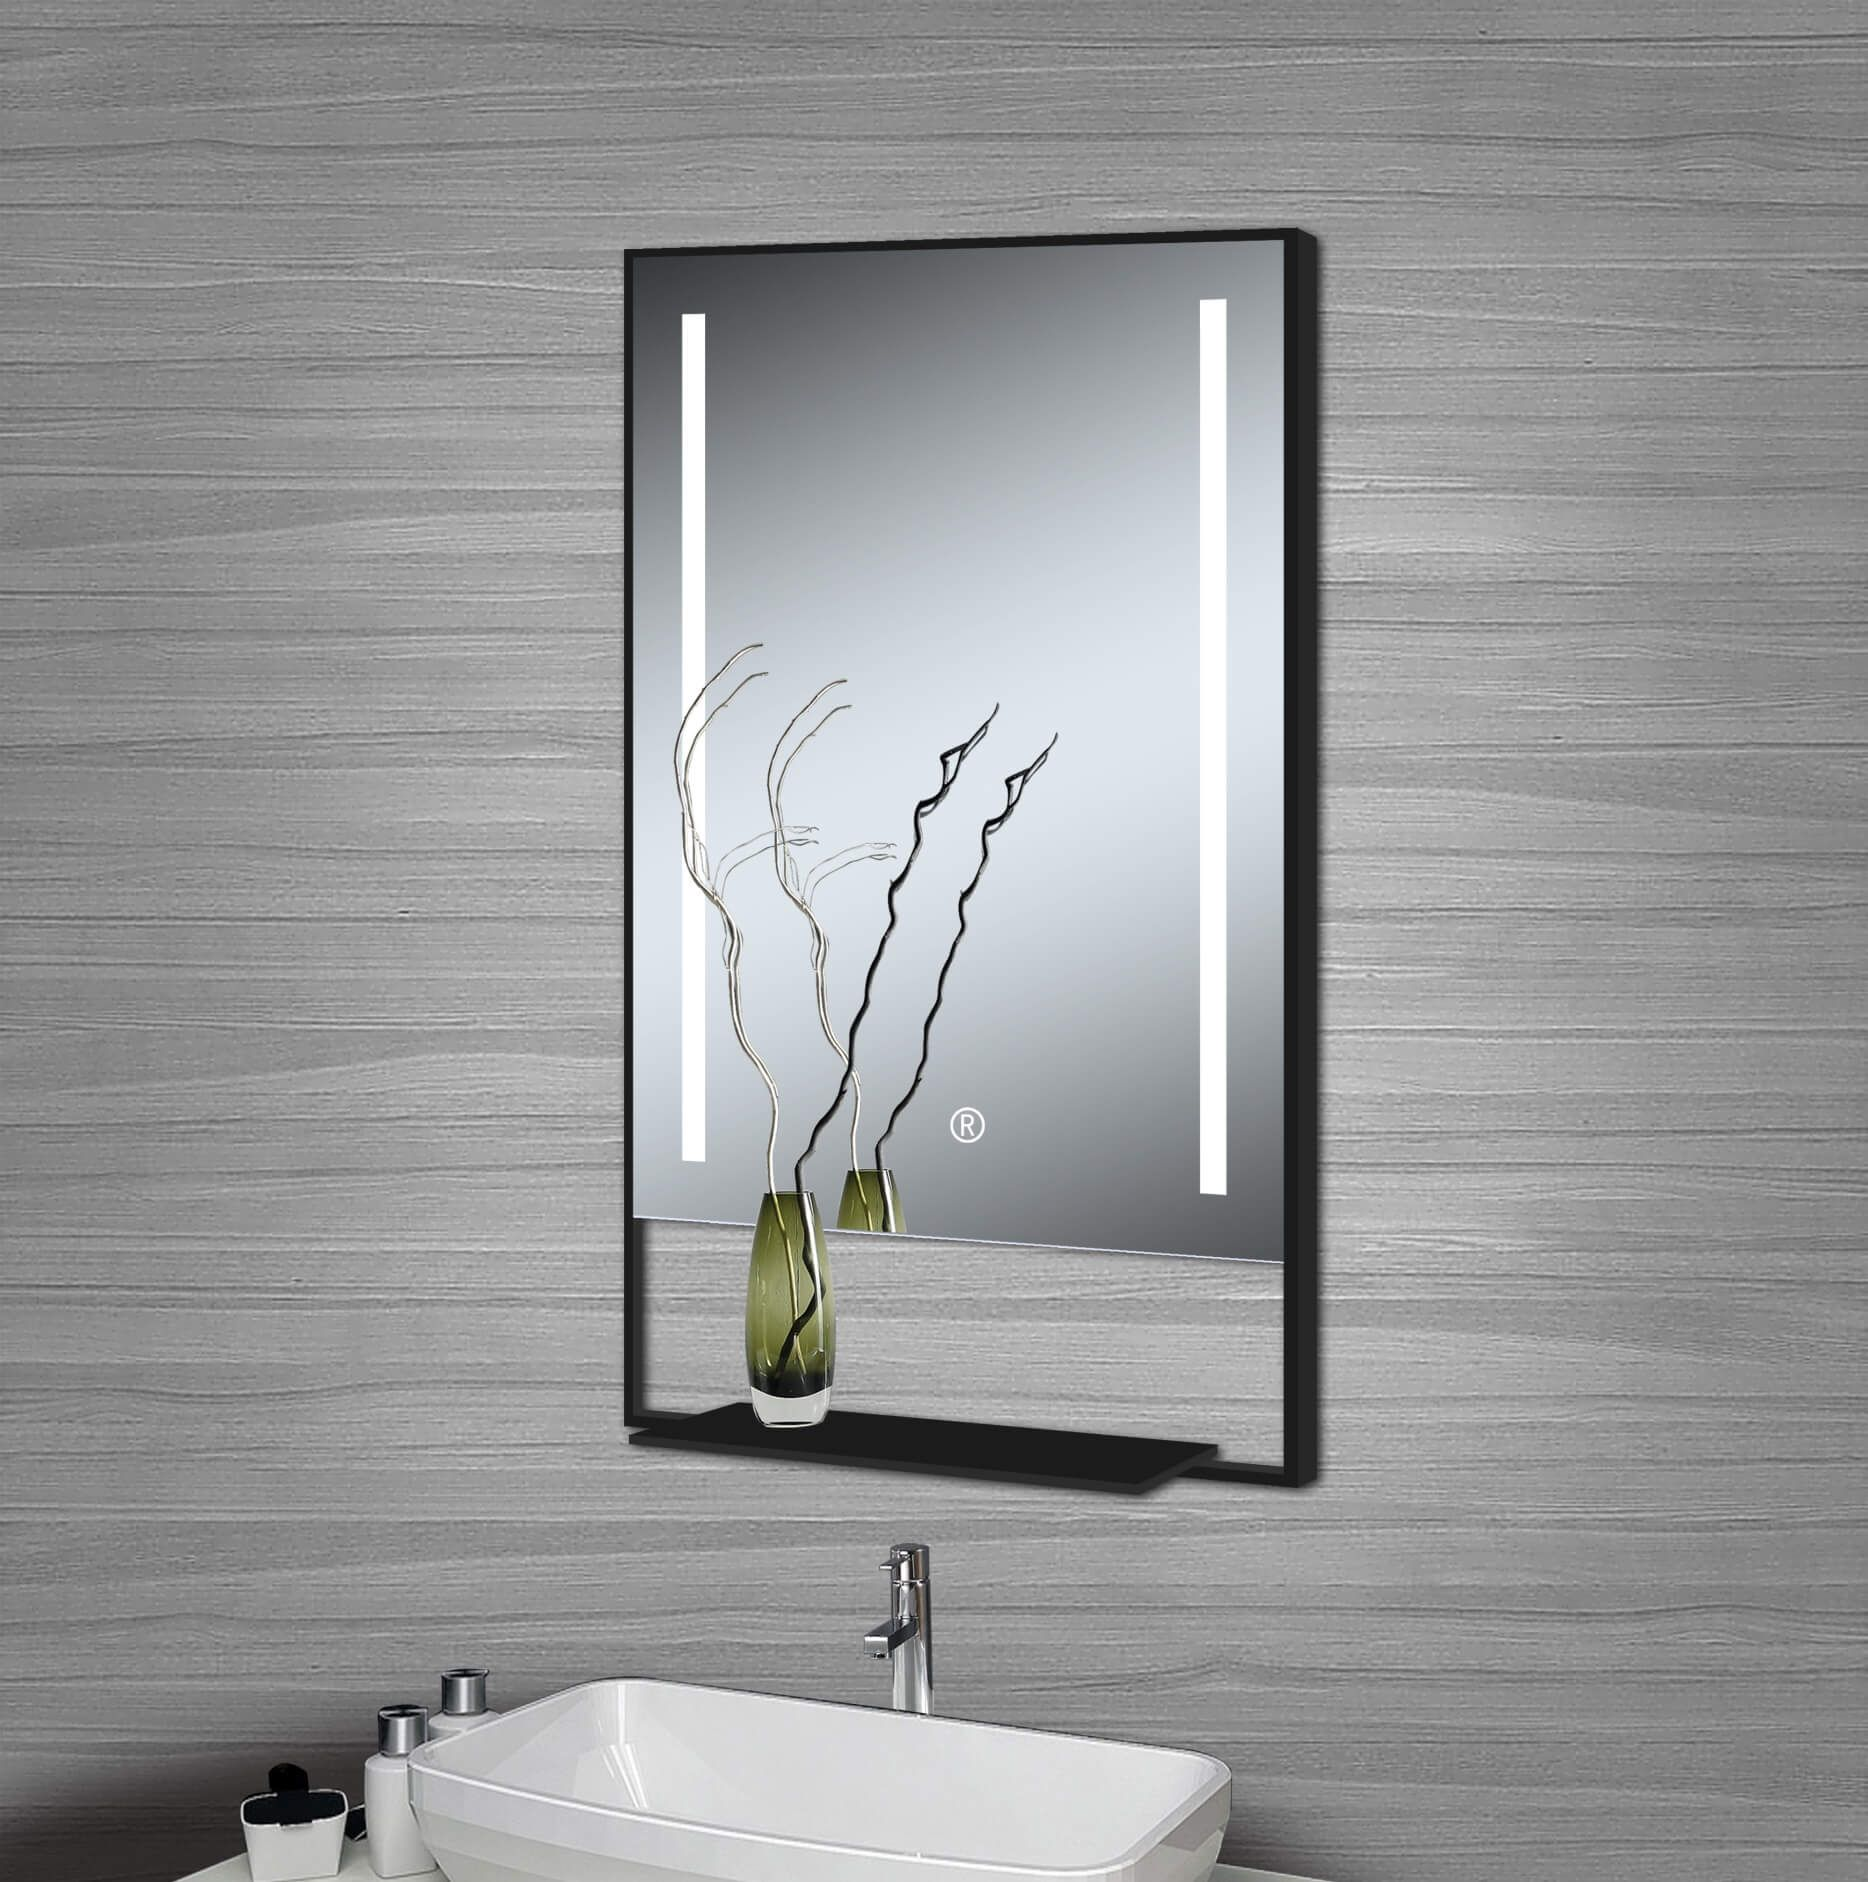 The Chandel Led Mirror Is One Of Our Most Sleek Designs The Modern Black Frame And Built In Glass Shelf Offer A D Led Mirror Bathroom Led Mirror Glass Shelves